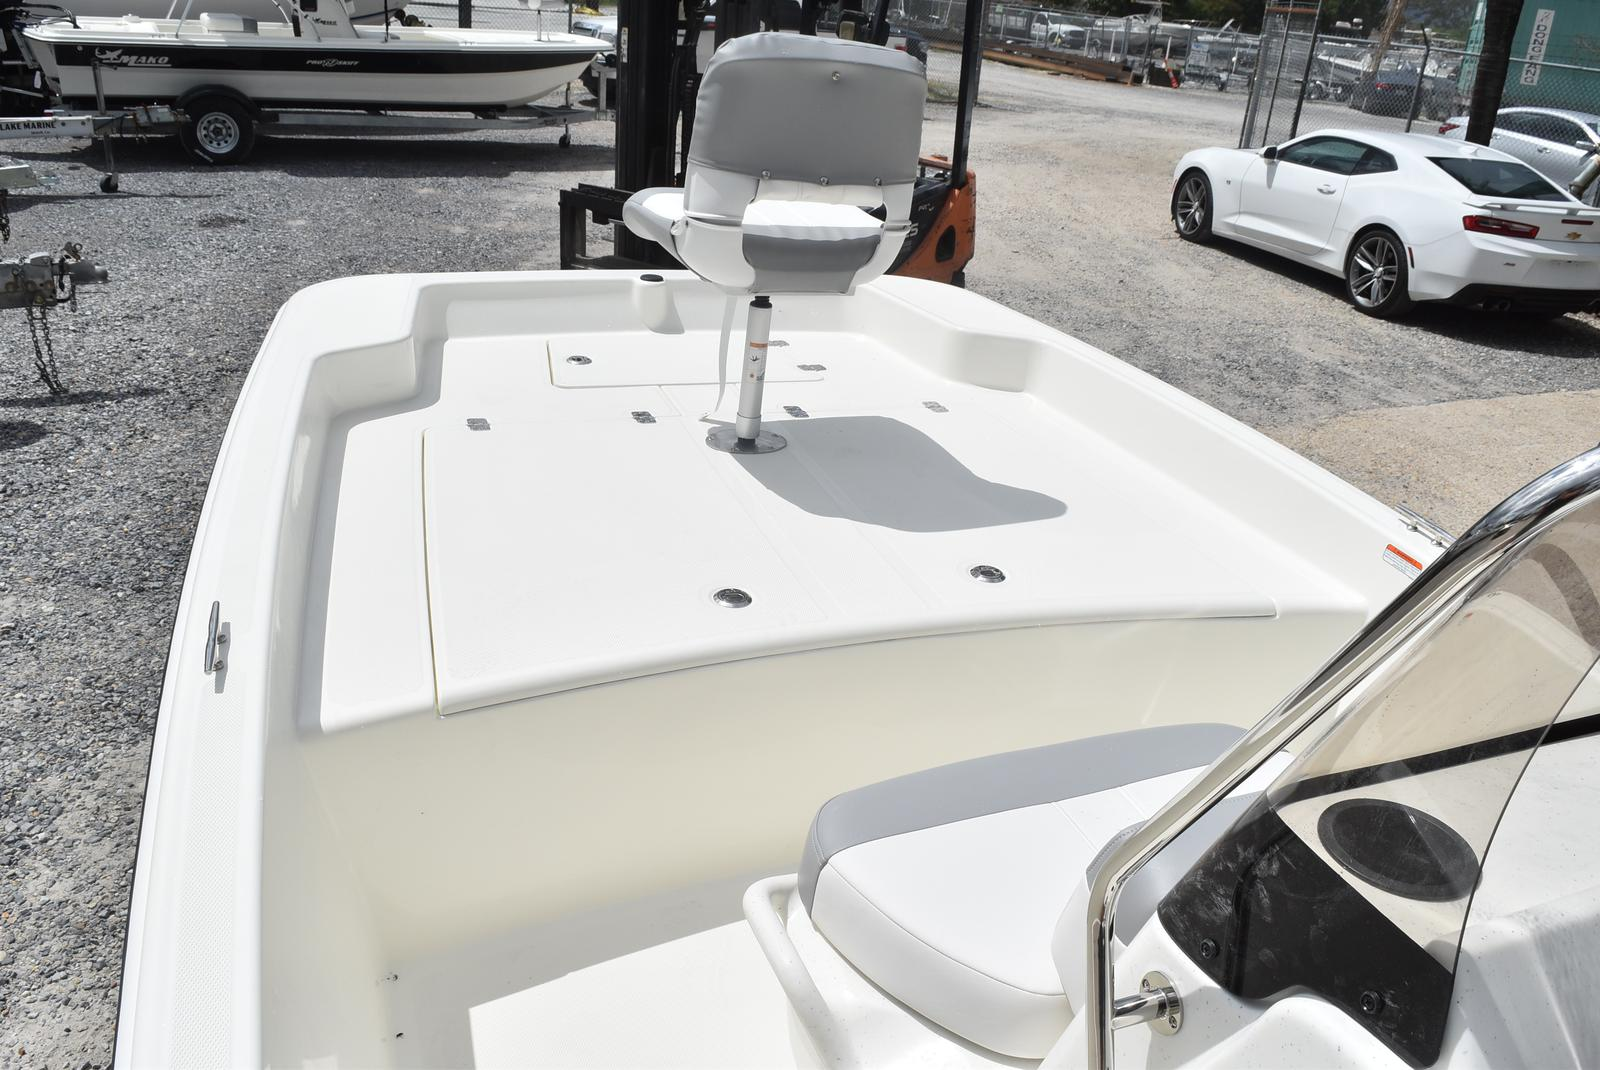 2020 Mako boat for sale, model of the boat is Pro Skiff 17, 75 ELPT & Image # 405 of 702